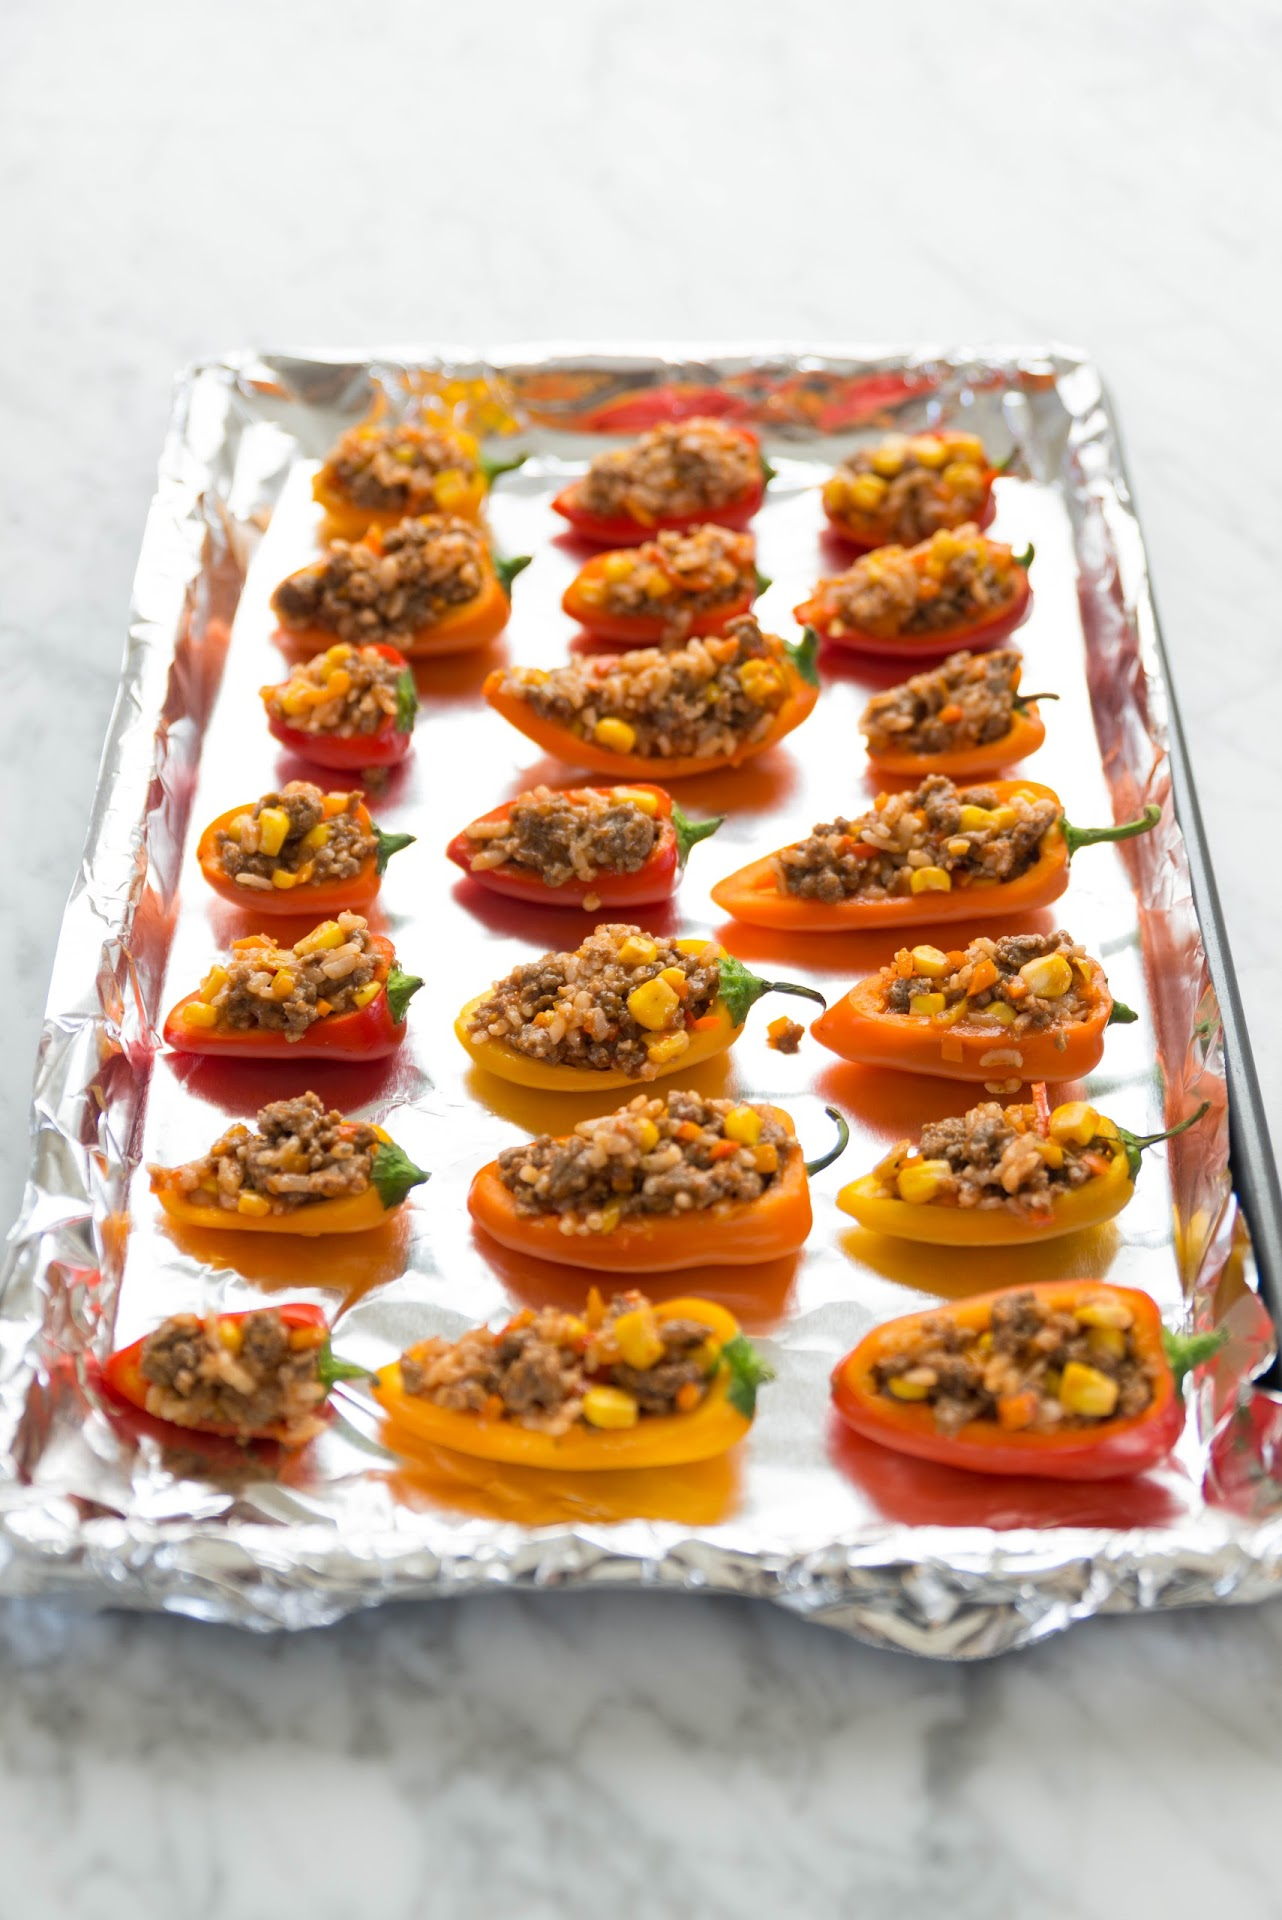 mini stuffed pepper recipe, healthy, turkey sausage, veggies, healthy, meal ideas, dinner, best, quick, easy, lunch, weekday, weeknight dinner idea, wholesome, meals kids love, colorful